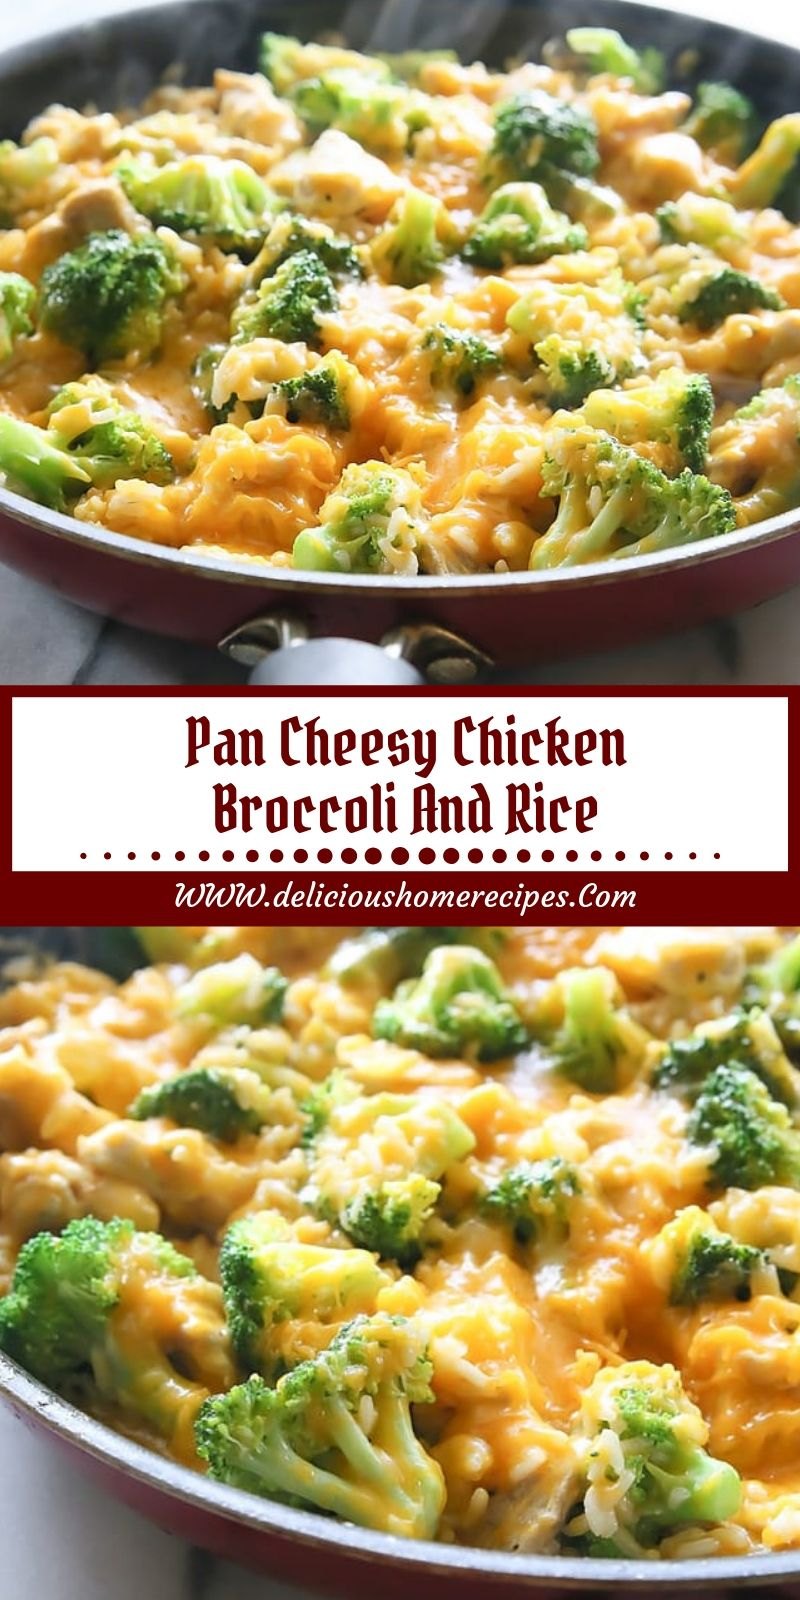 Pan Cheesy Chicken Broccoli And Rice images